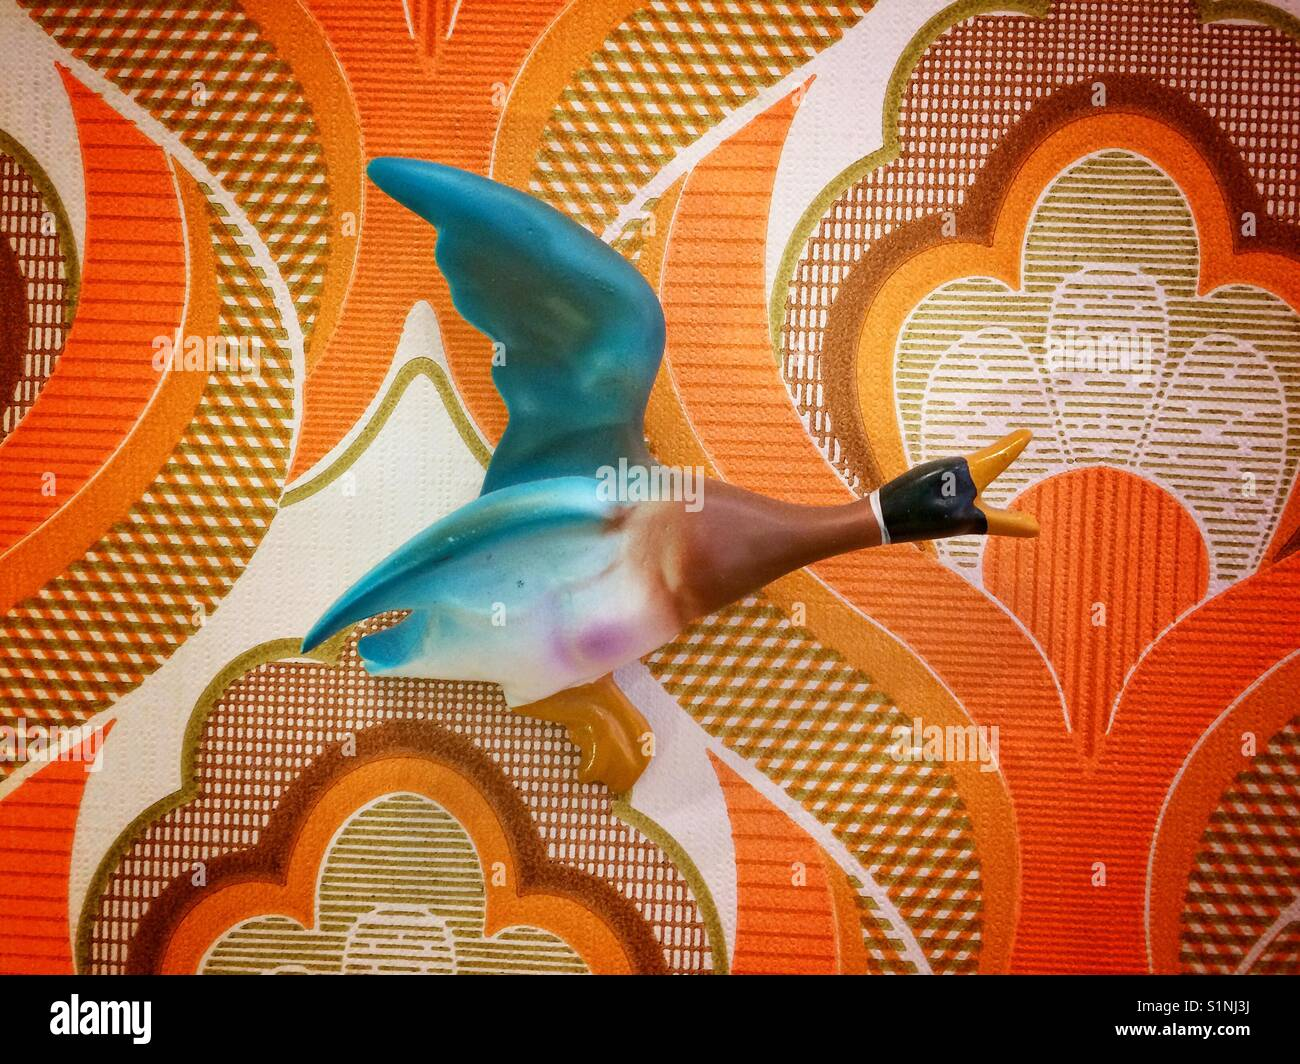 A Retro 1970s Wall Mounted Duck Flying Along On 70s